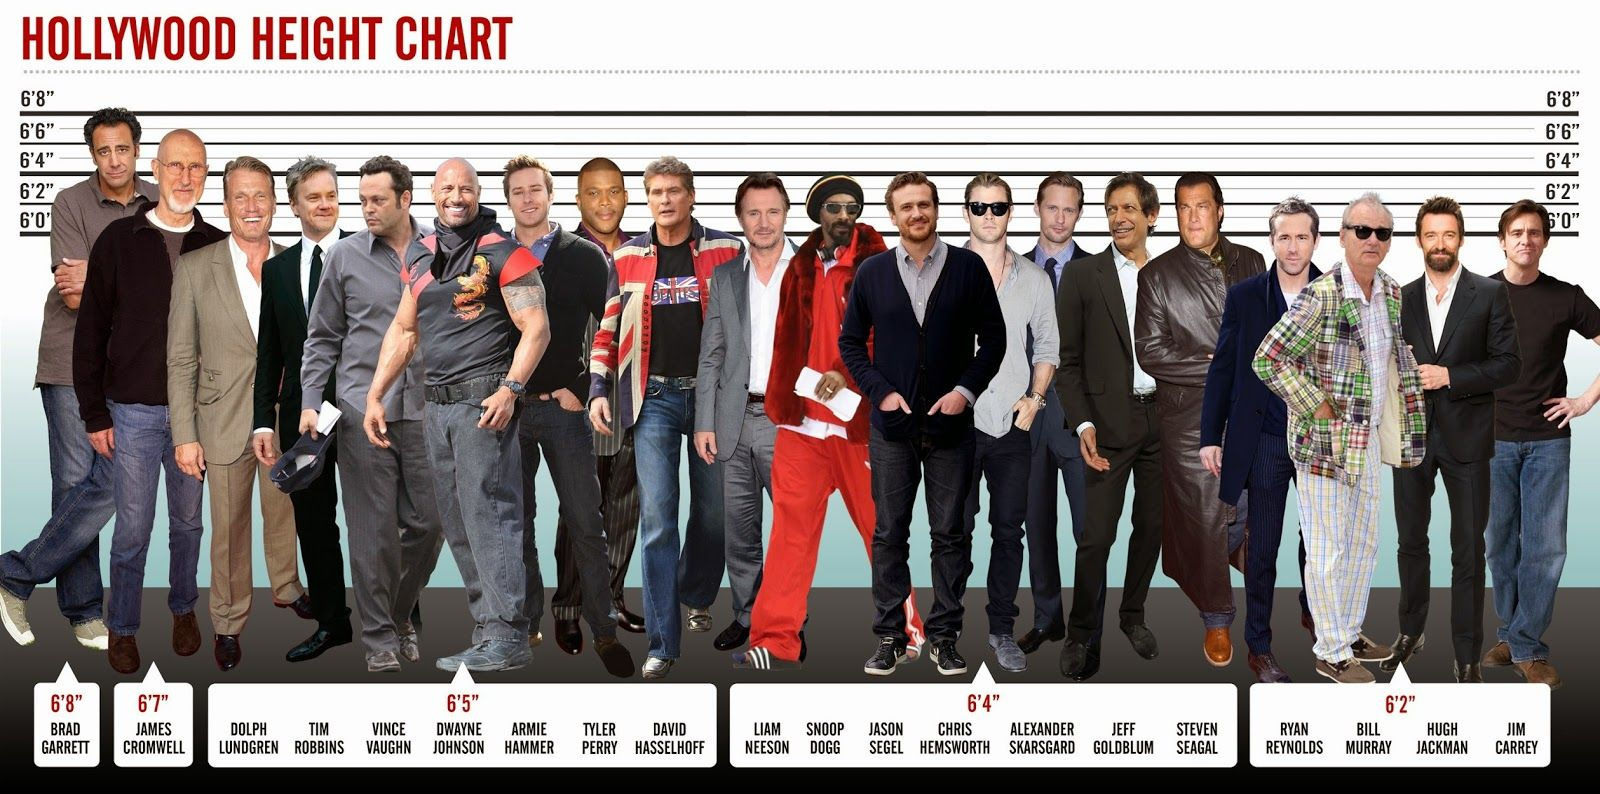 Celebrity Heights How Tall Are Celebrities Heights Of Celebrities Tallest Men In Hollywood Height Chart Tall Actors Height Chart Hollywood